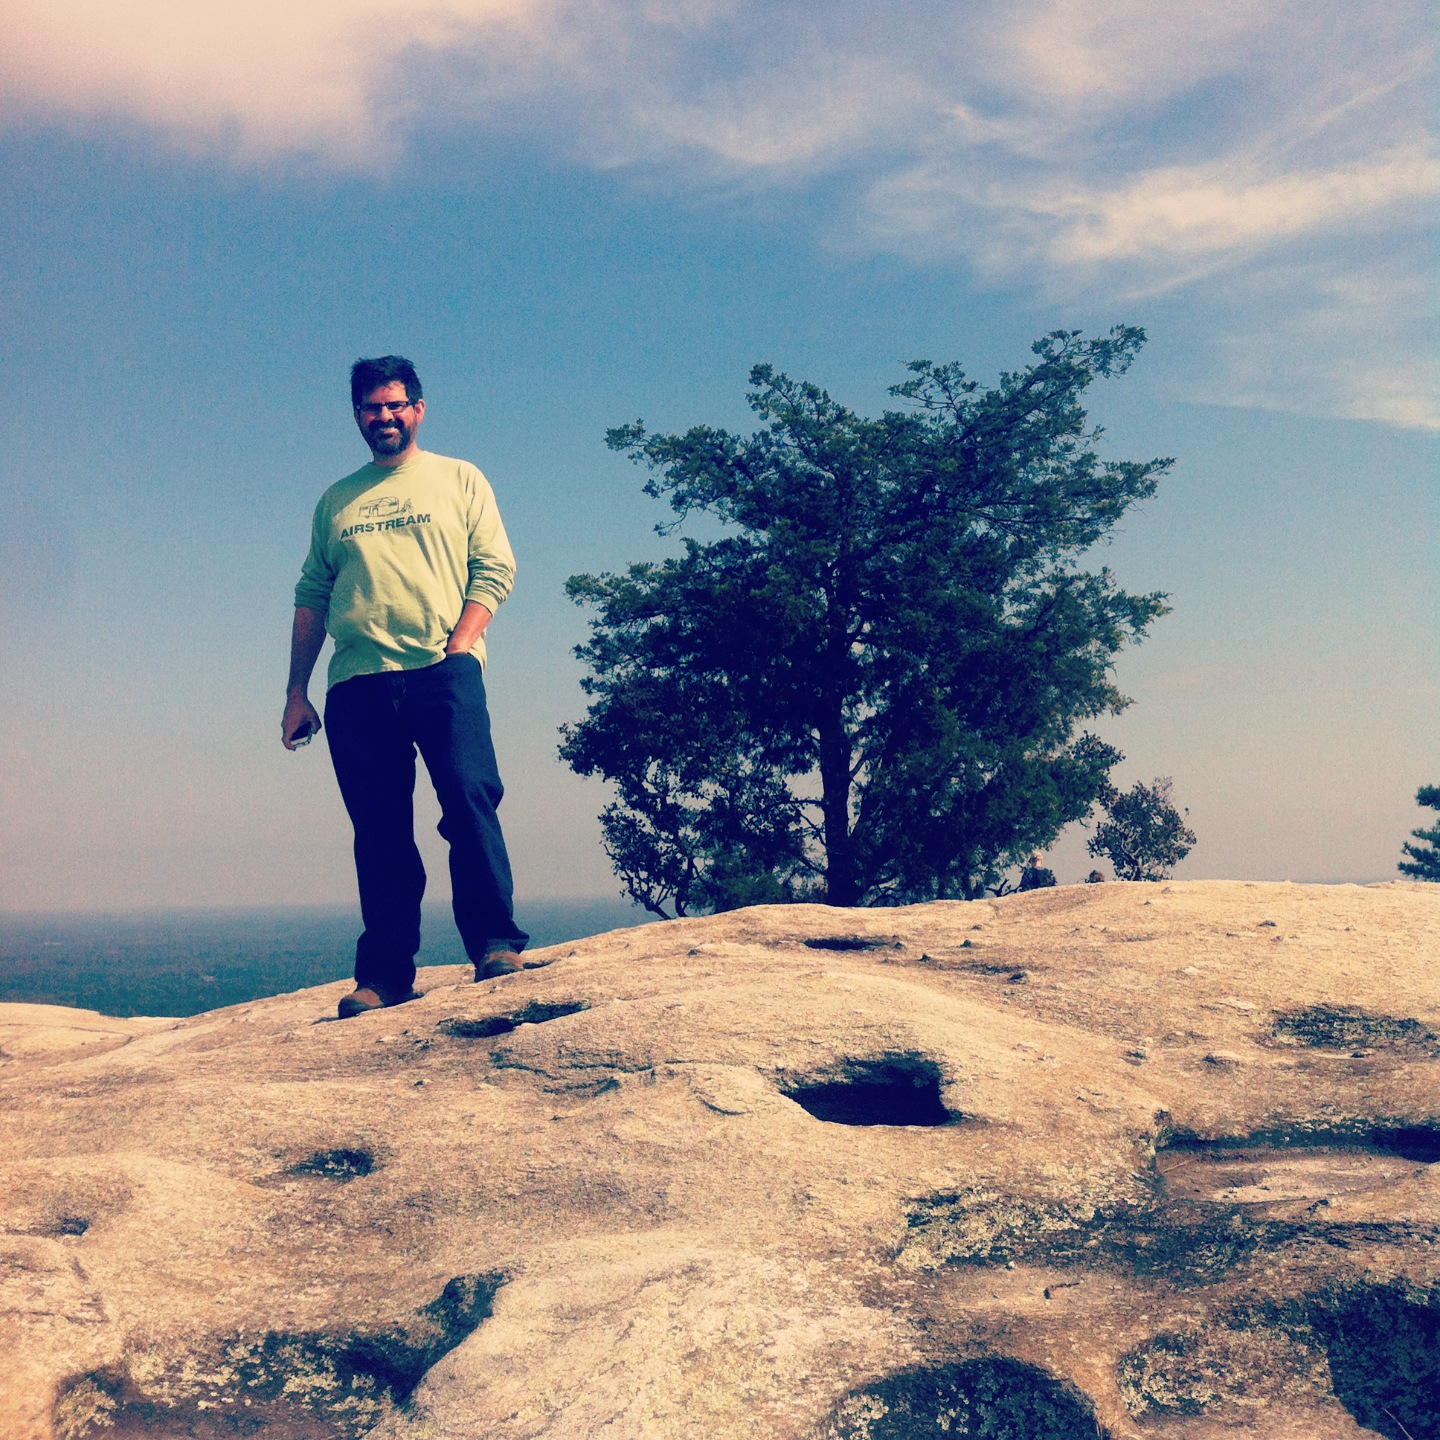 King of the wooooorld, atop Stone Mountain.